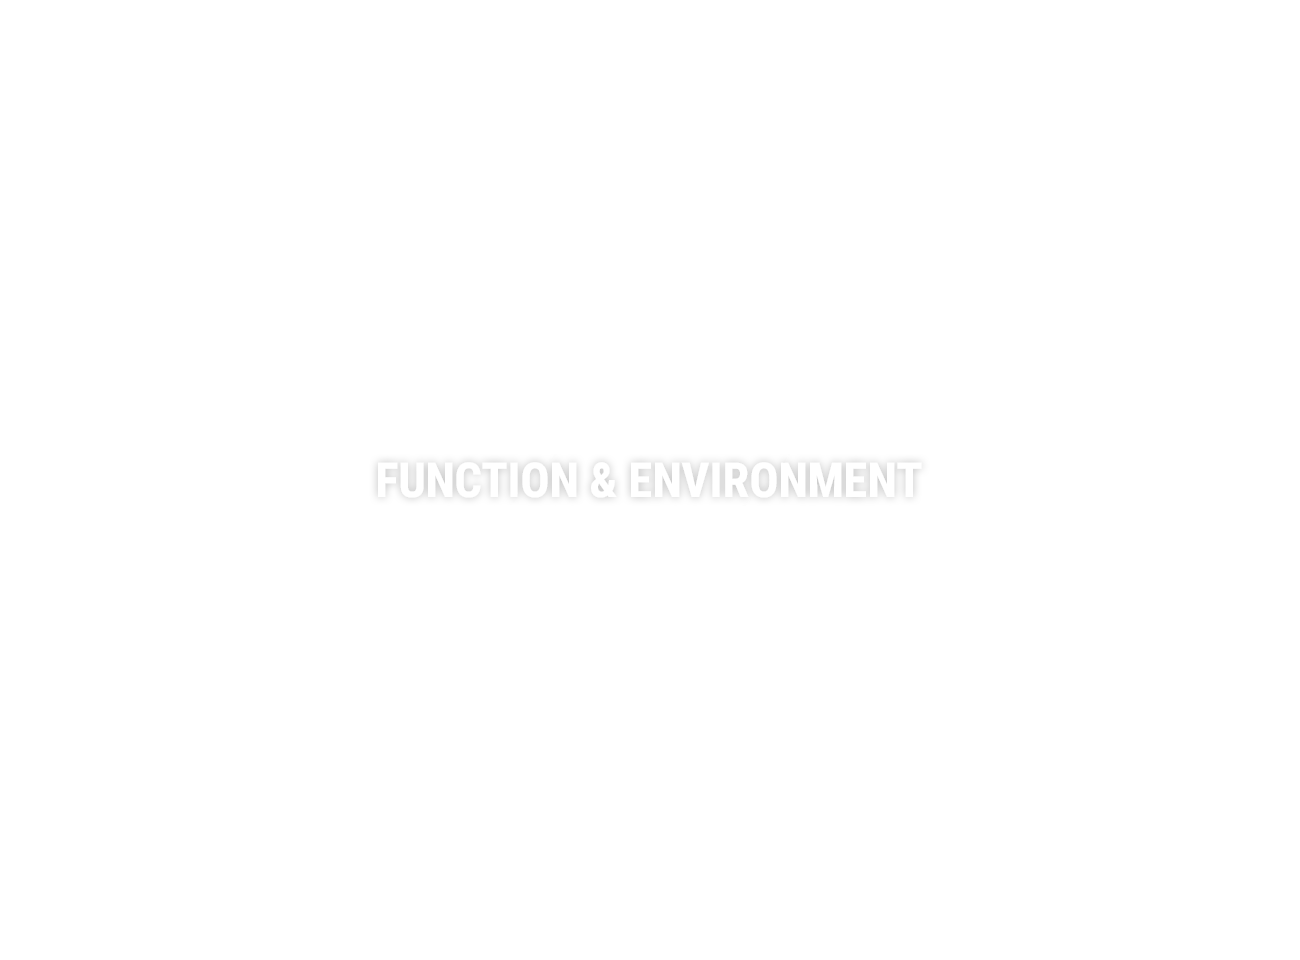 FUNCTION & ENVIRONMENT